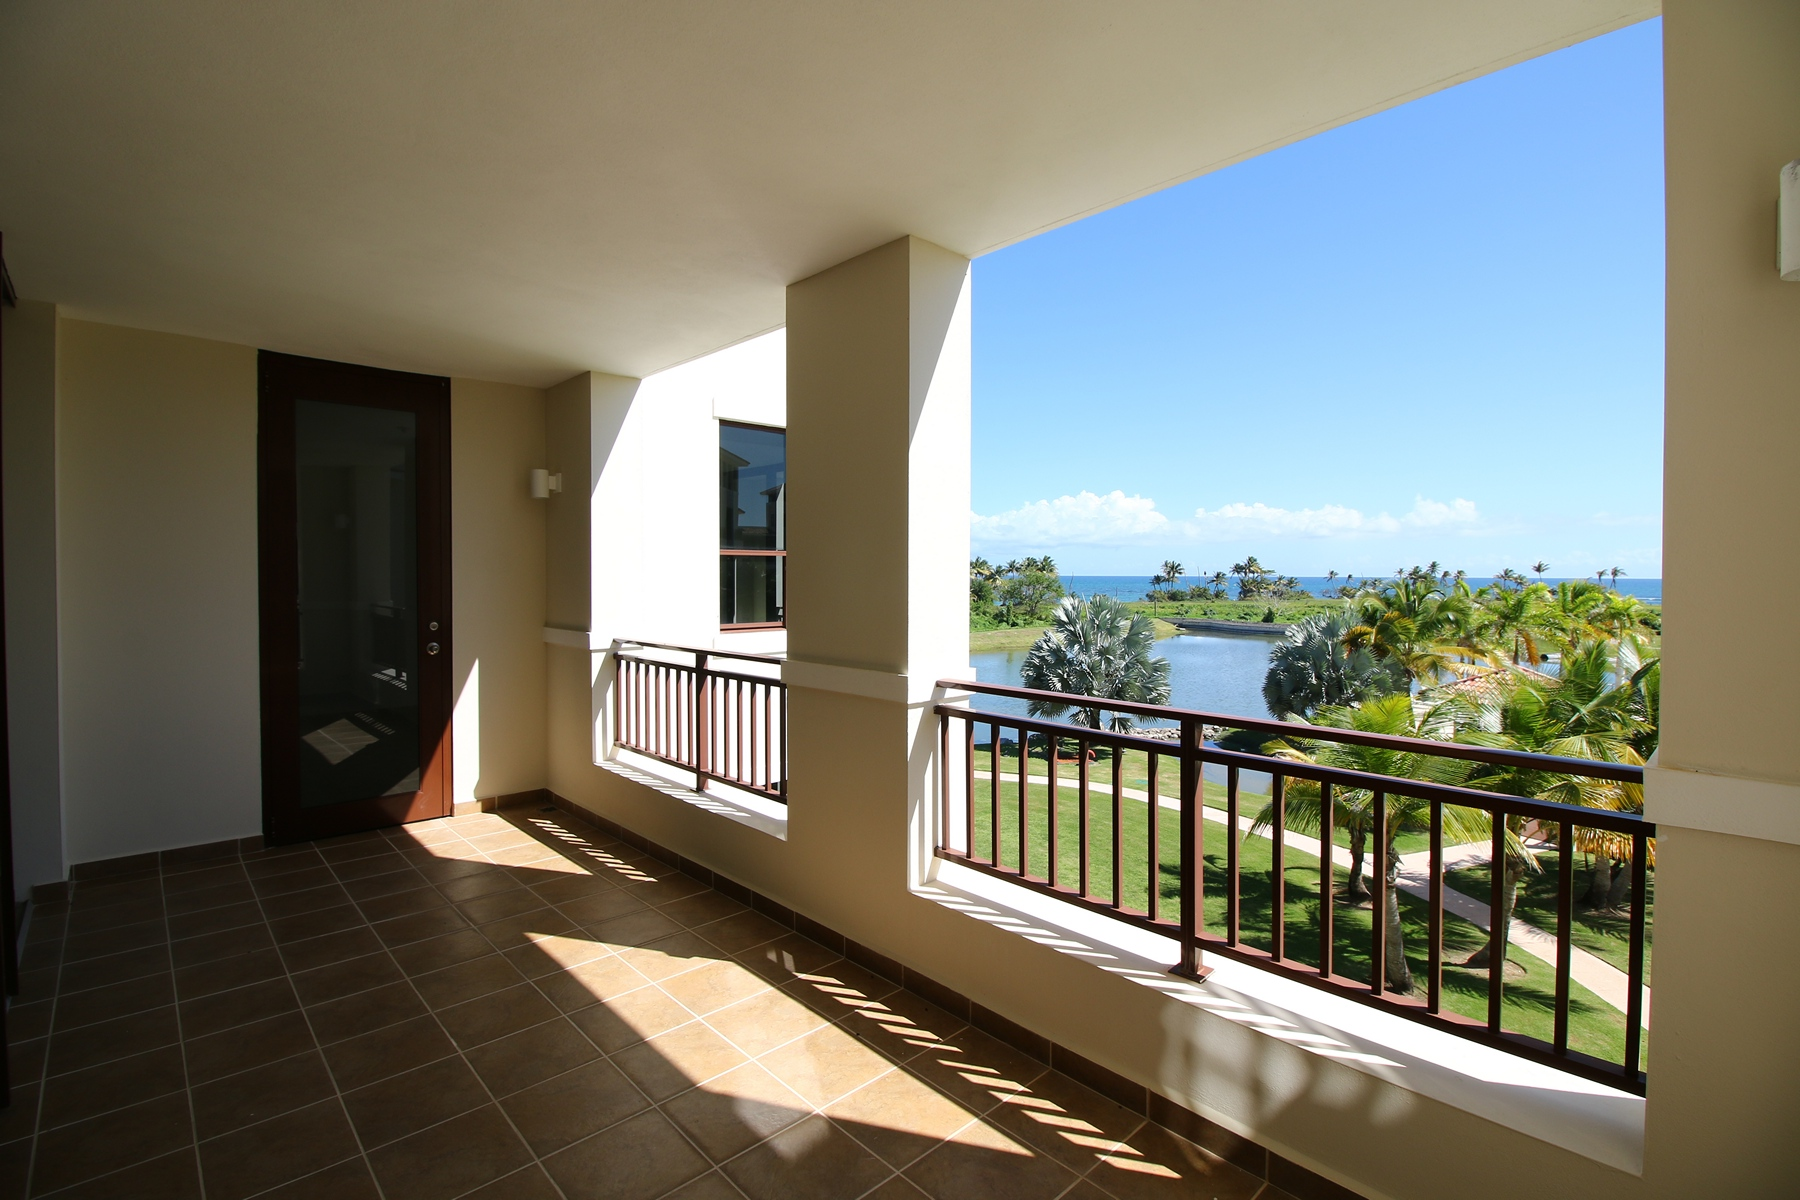 Additional photo for property listing at Residence 222 at 238 Candelero Drive 238 Candelero Drive, Apt 222 Solarea Beach Resort and Yacht Club Palmas Del Mar, Puerto Rico 00791 Πουερτο Ρικο